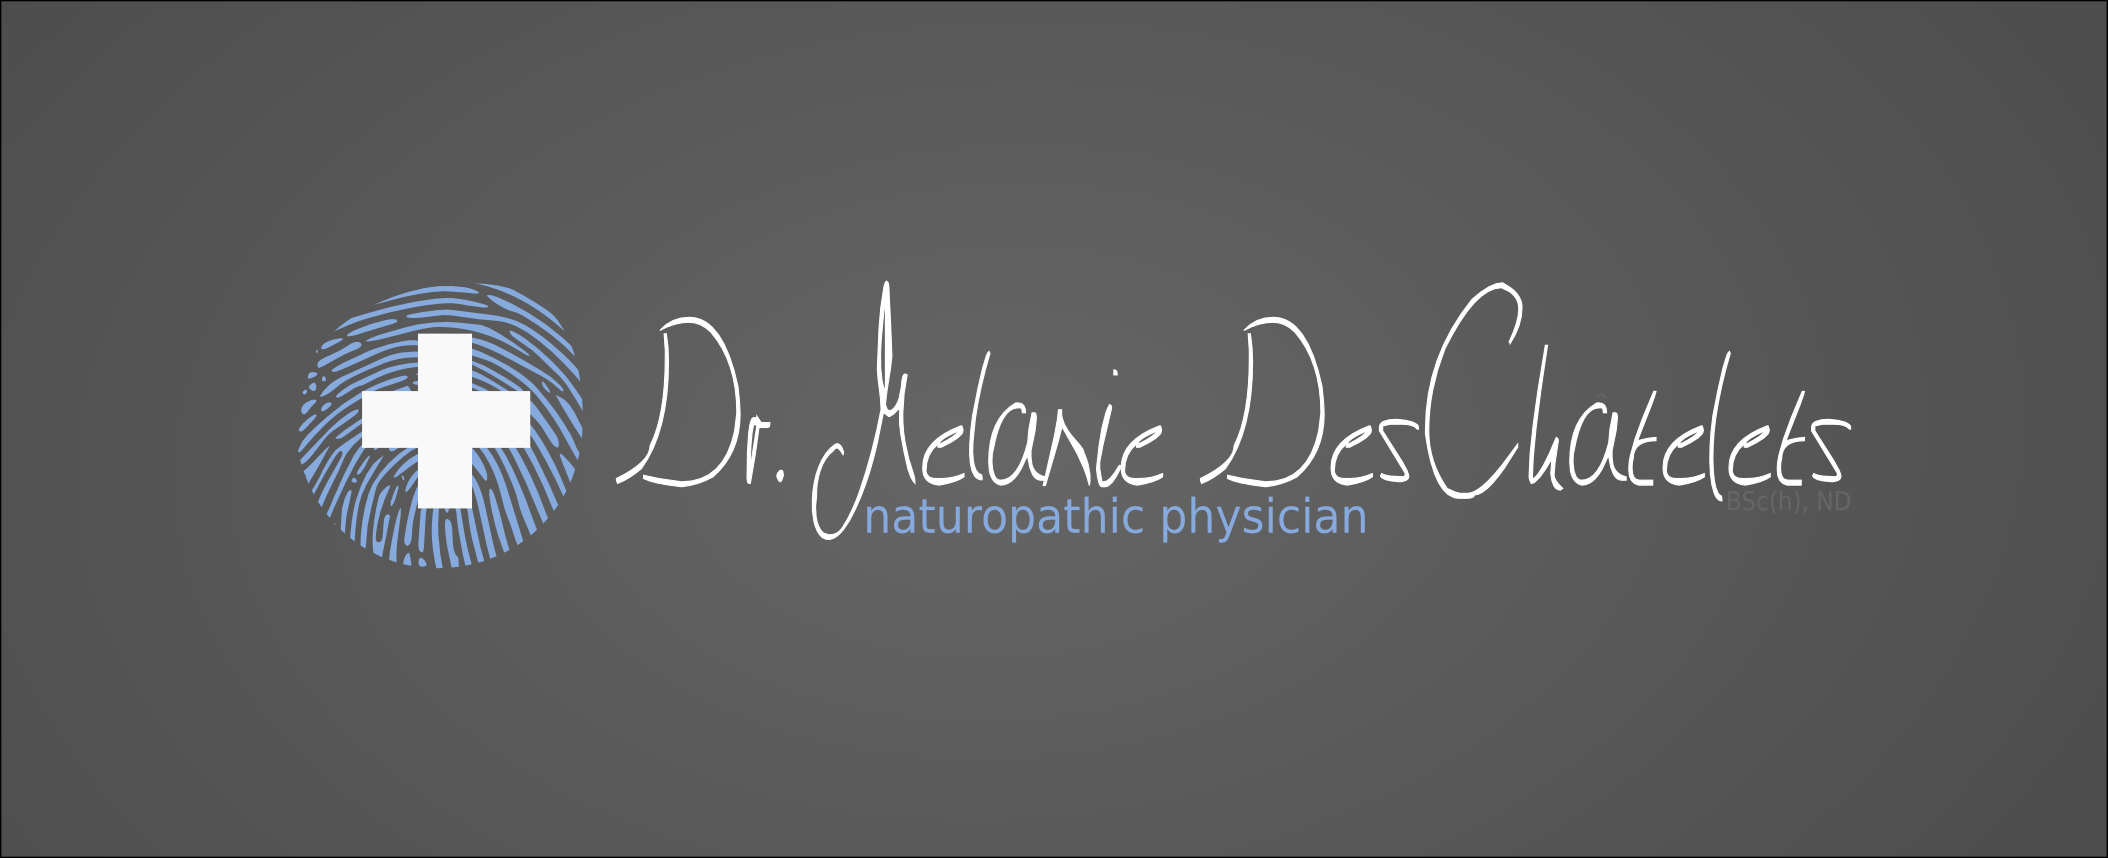 Logo Design by Andrew Bertram - Entry No. 157 in the Logo Design Contest Artistic Logo Design for Dr Mélanie DesChâtelets.